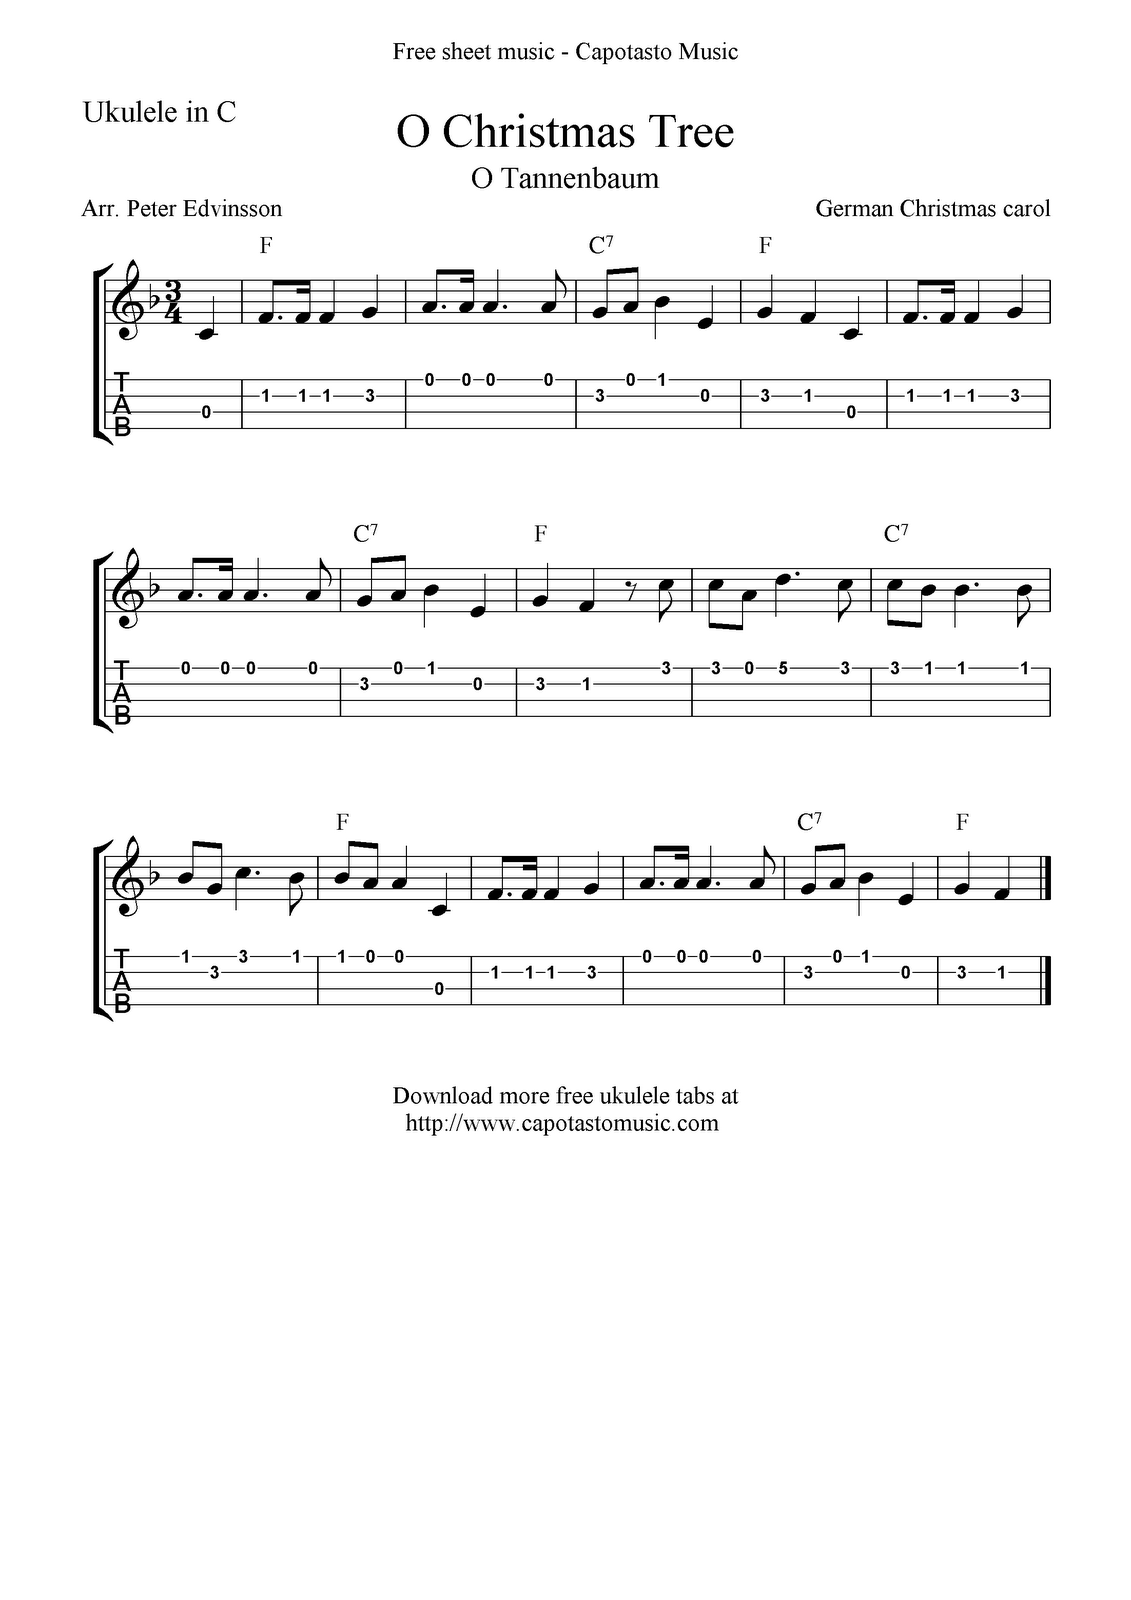 Oh Tannenbaum Noten Keyboard.O Christmas Tree O Tannenbaum Ukulele Sheet Music Free